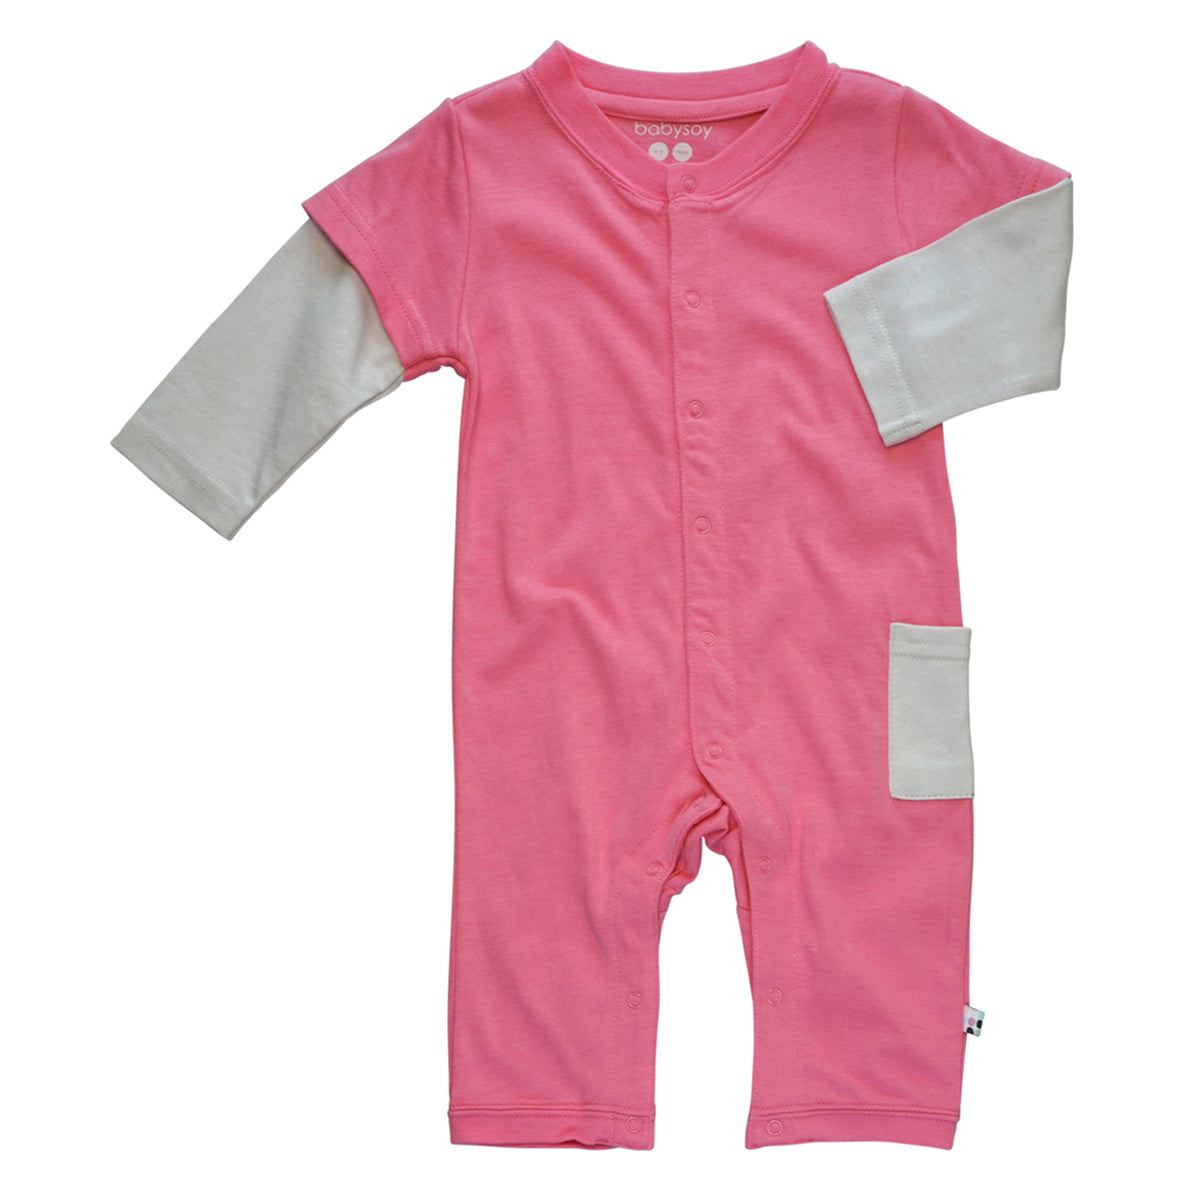 Eggplant 18 24 Months Babysoy Layered One Piece